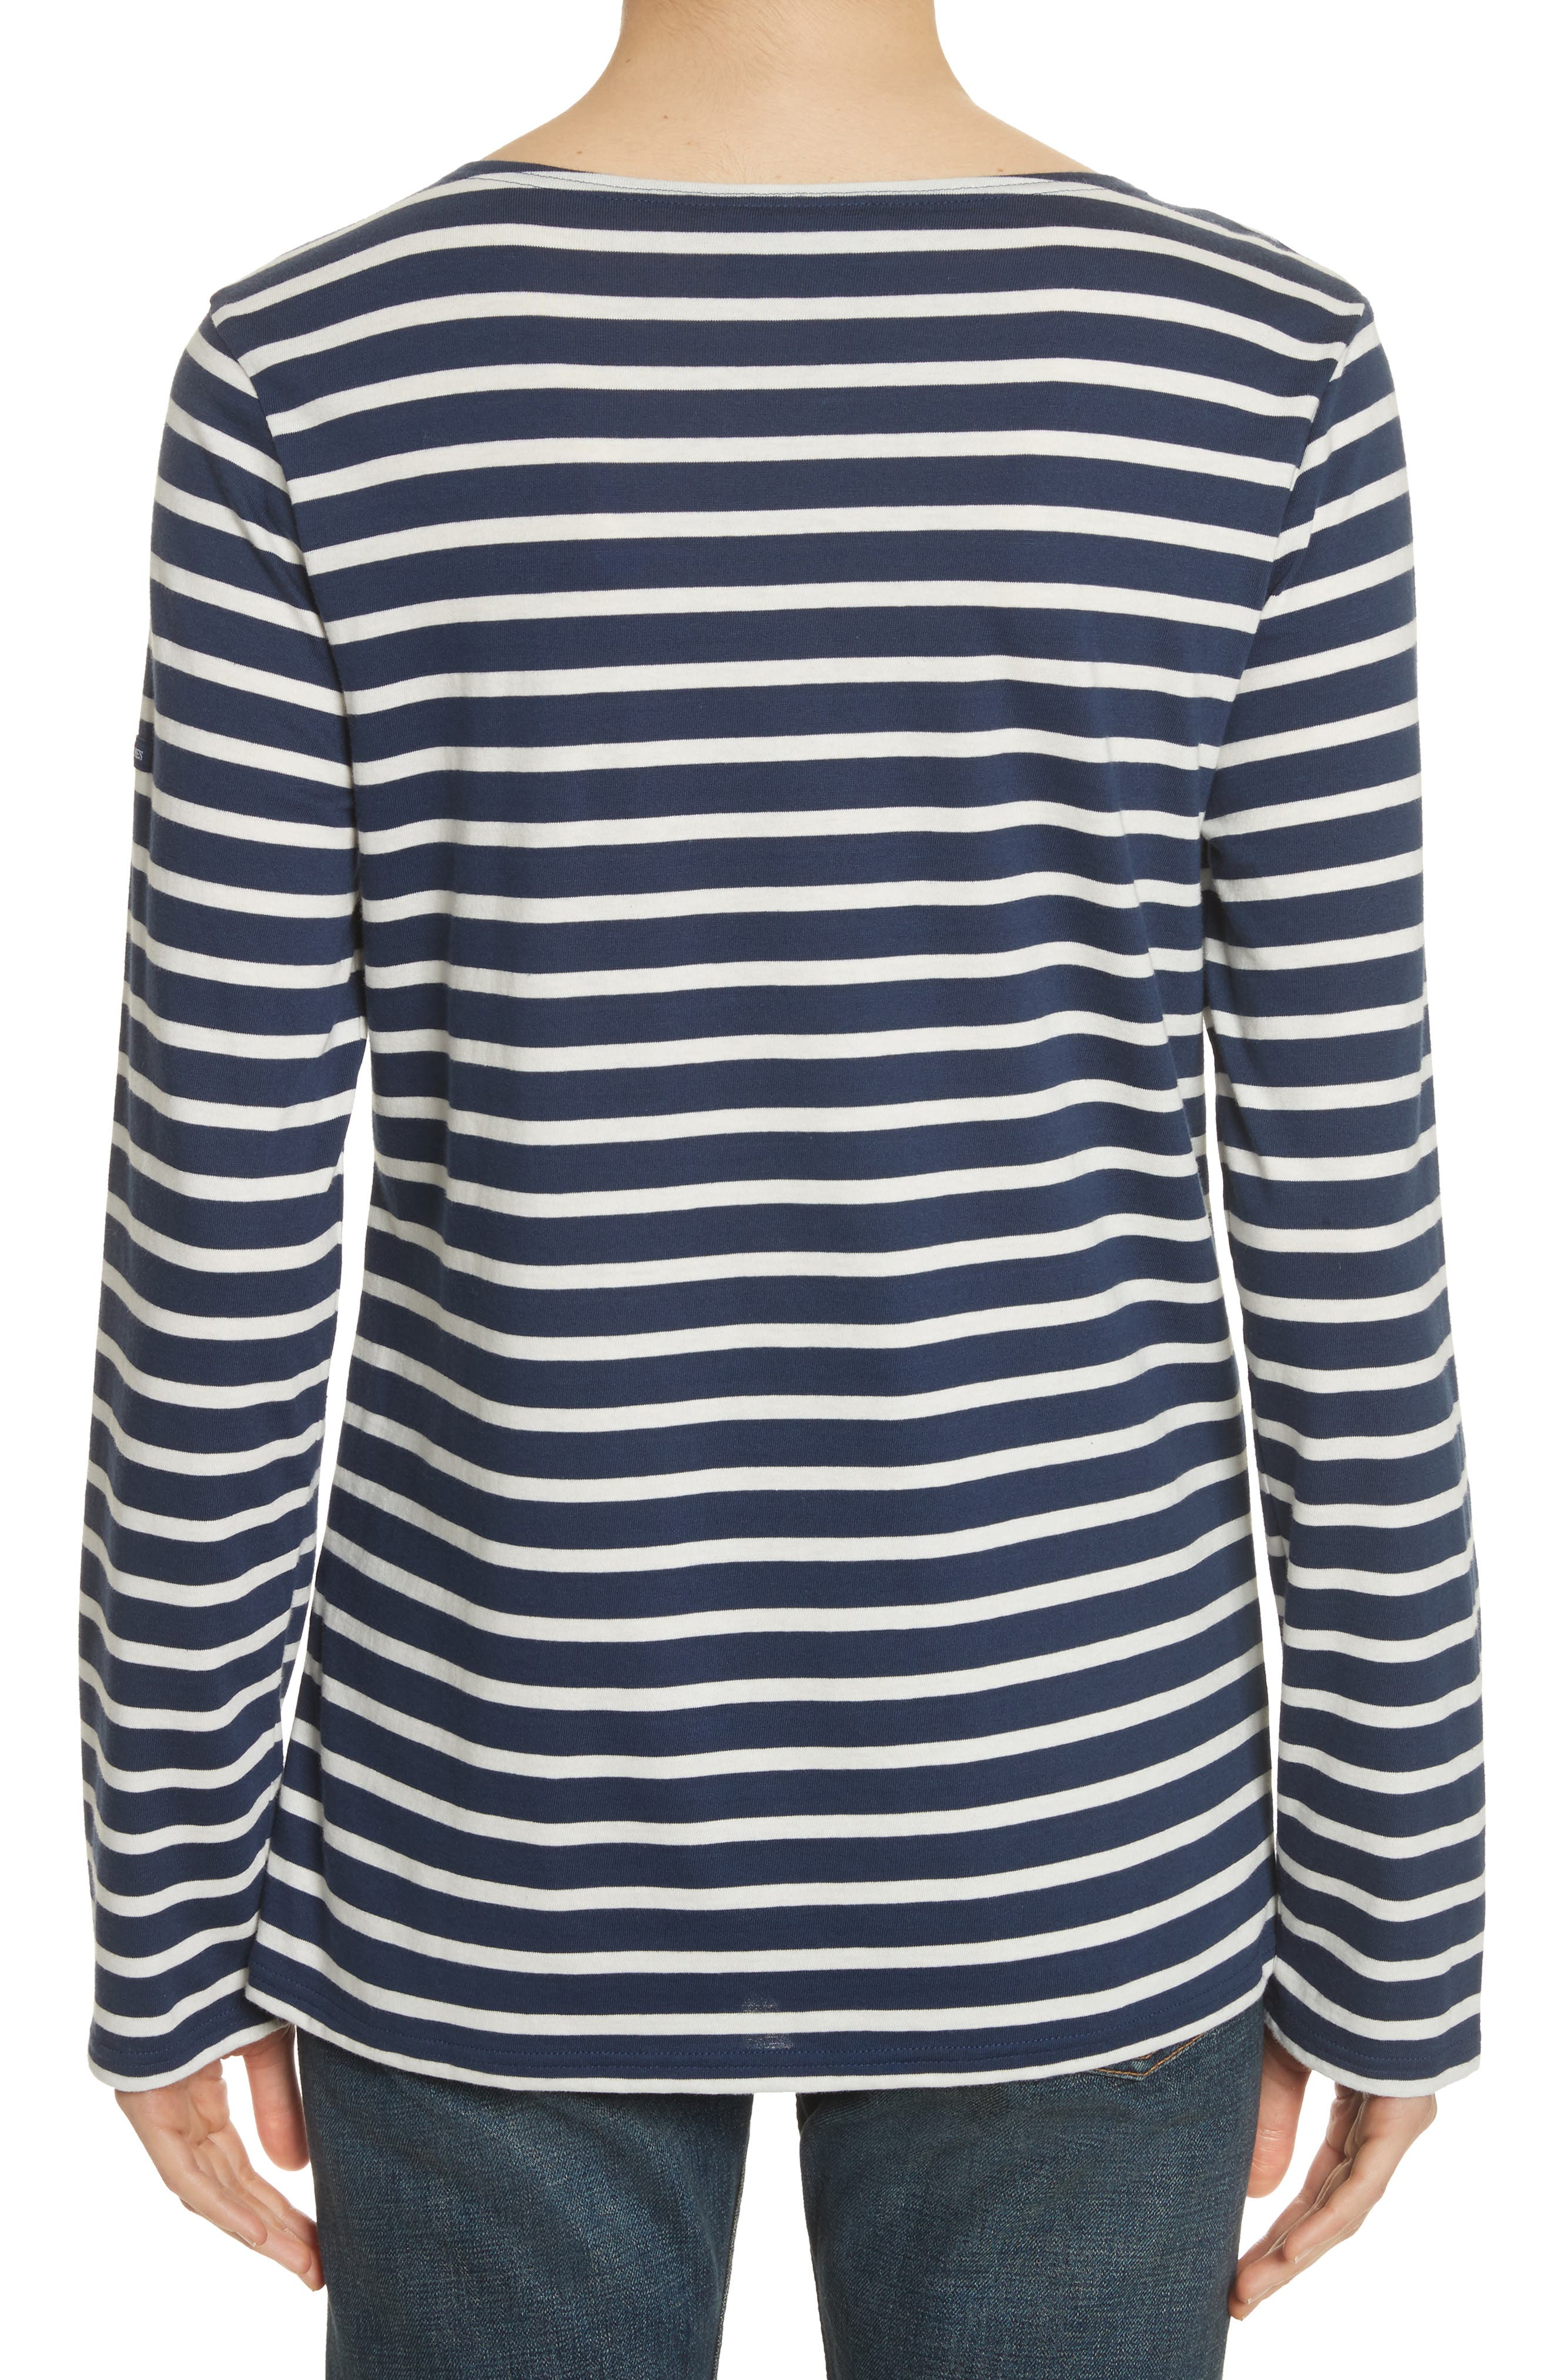 Minquiers Moderne Striped Sailor Shirt,                             Alternate thumbnail 3, color,                             NAVY/ OFF WHITE